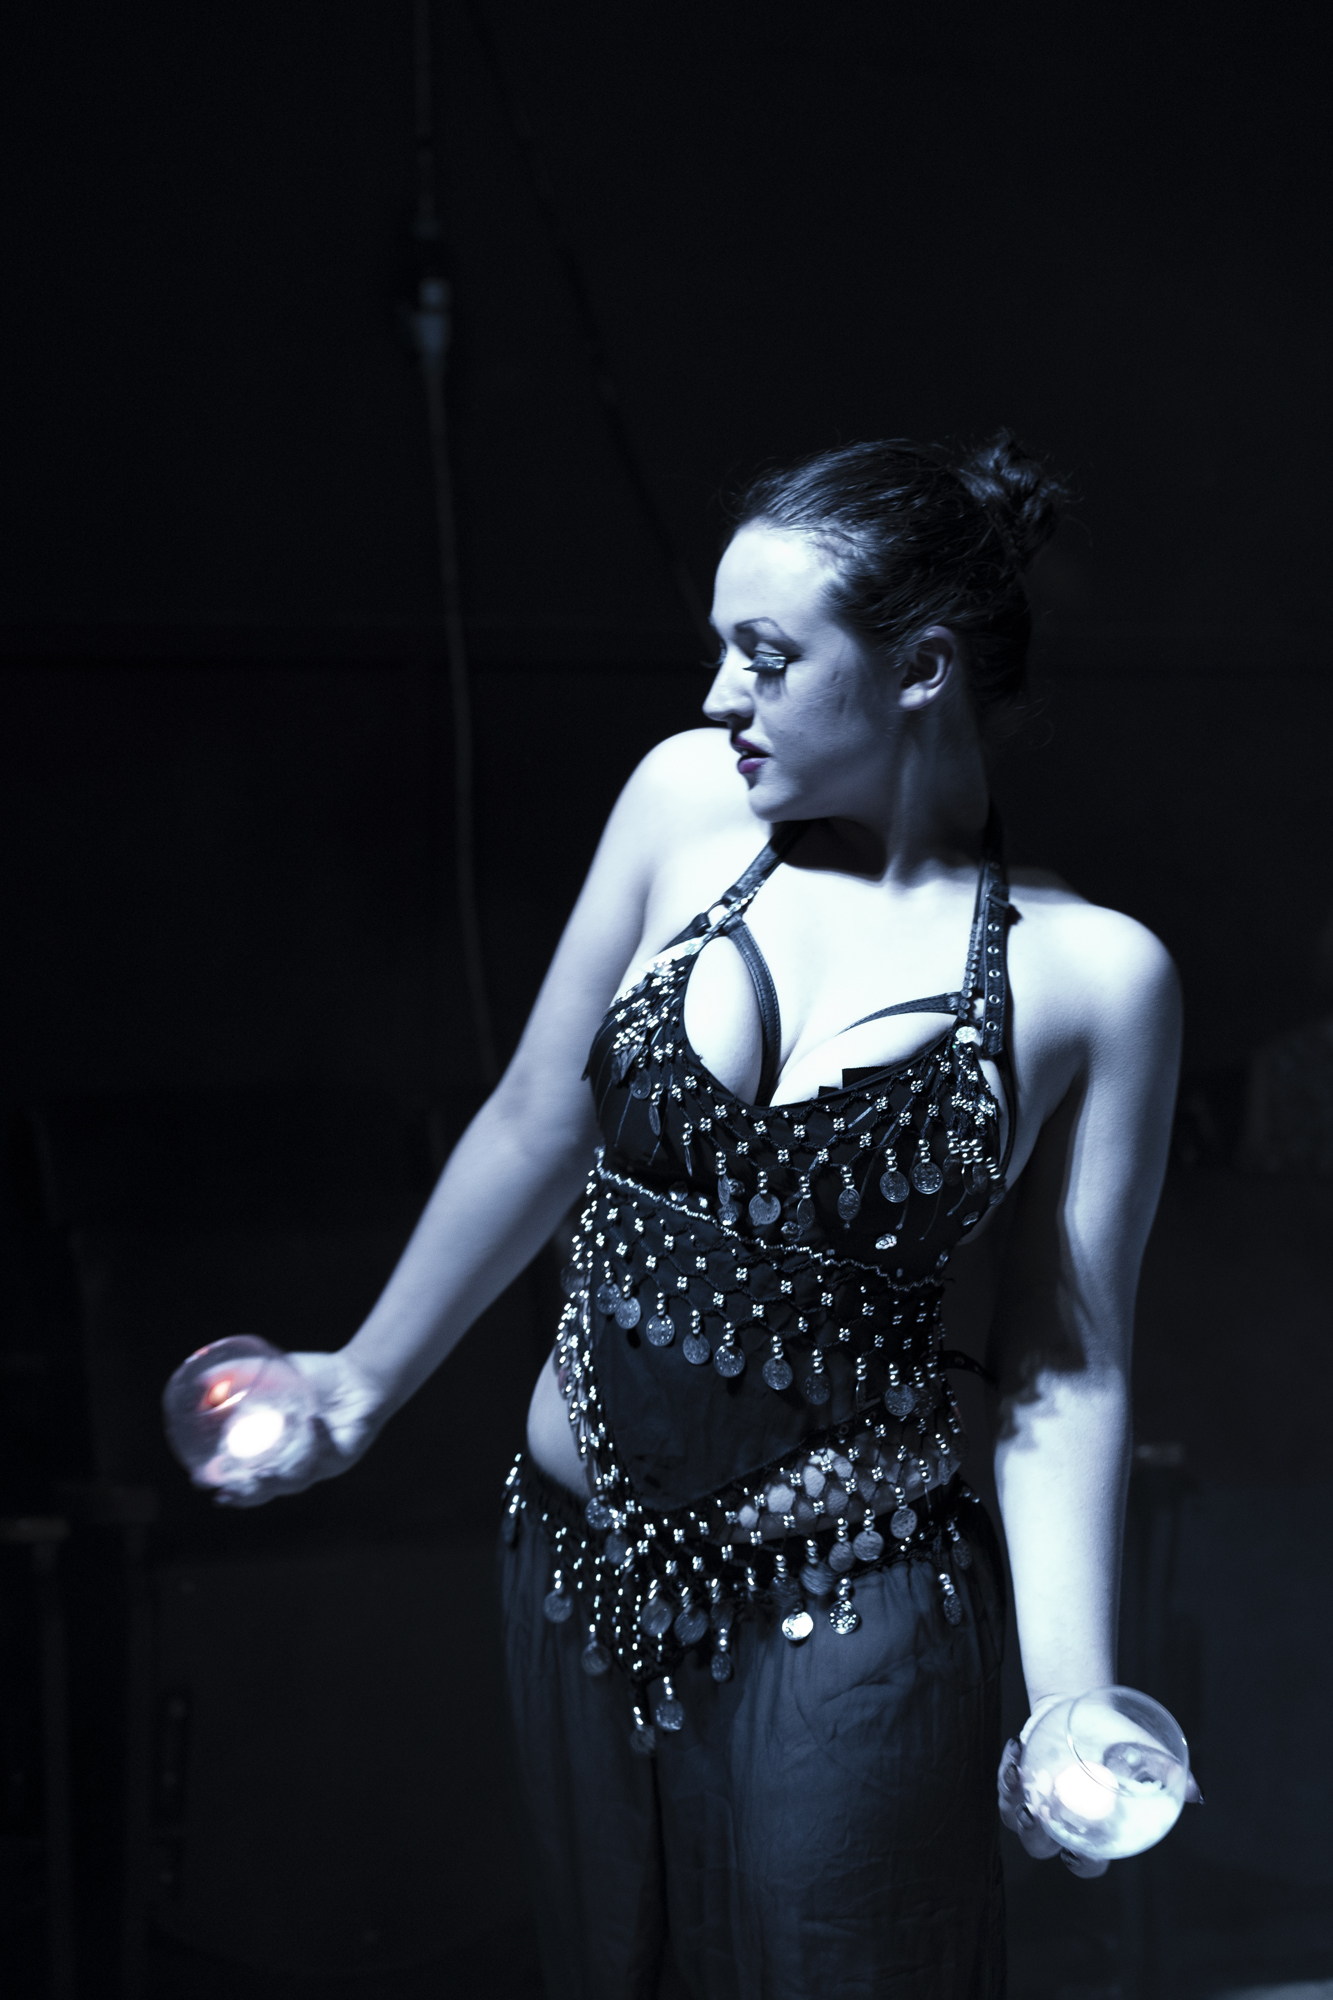 Undine performing at Apocalesque